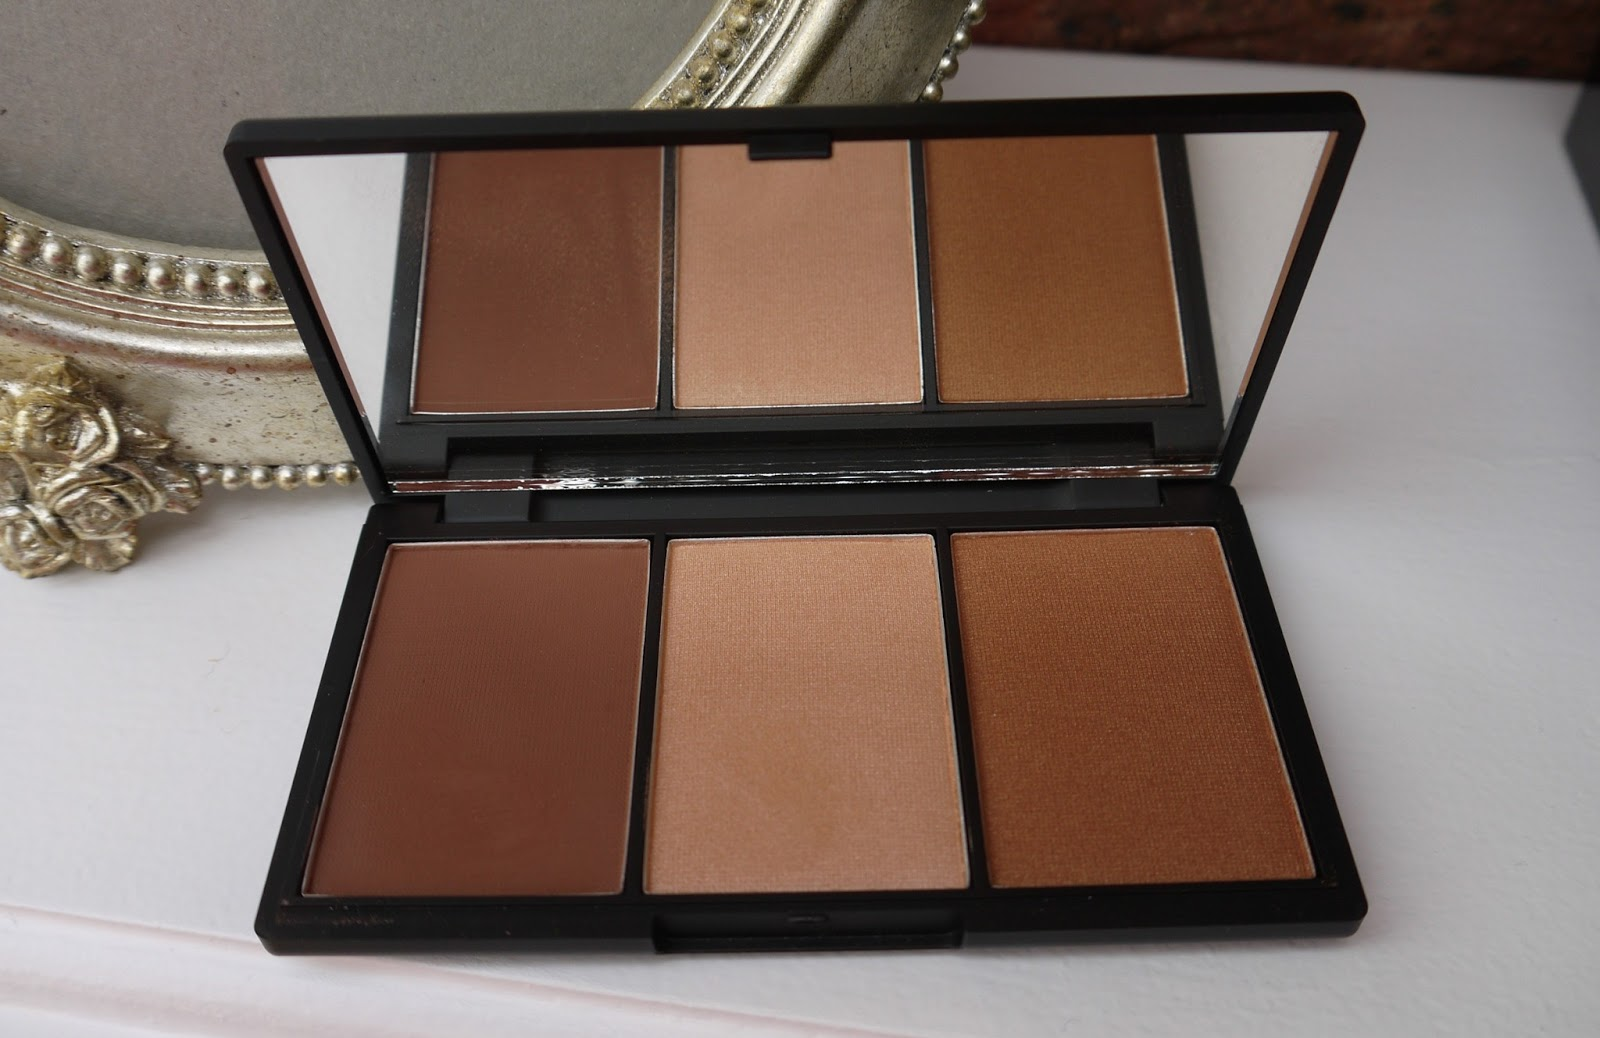 BEAUTY u0026 LE CHIC: Face Form: The Ultimate Contour Kit from Sleek